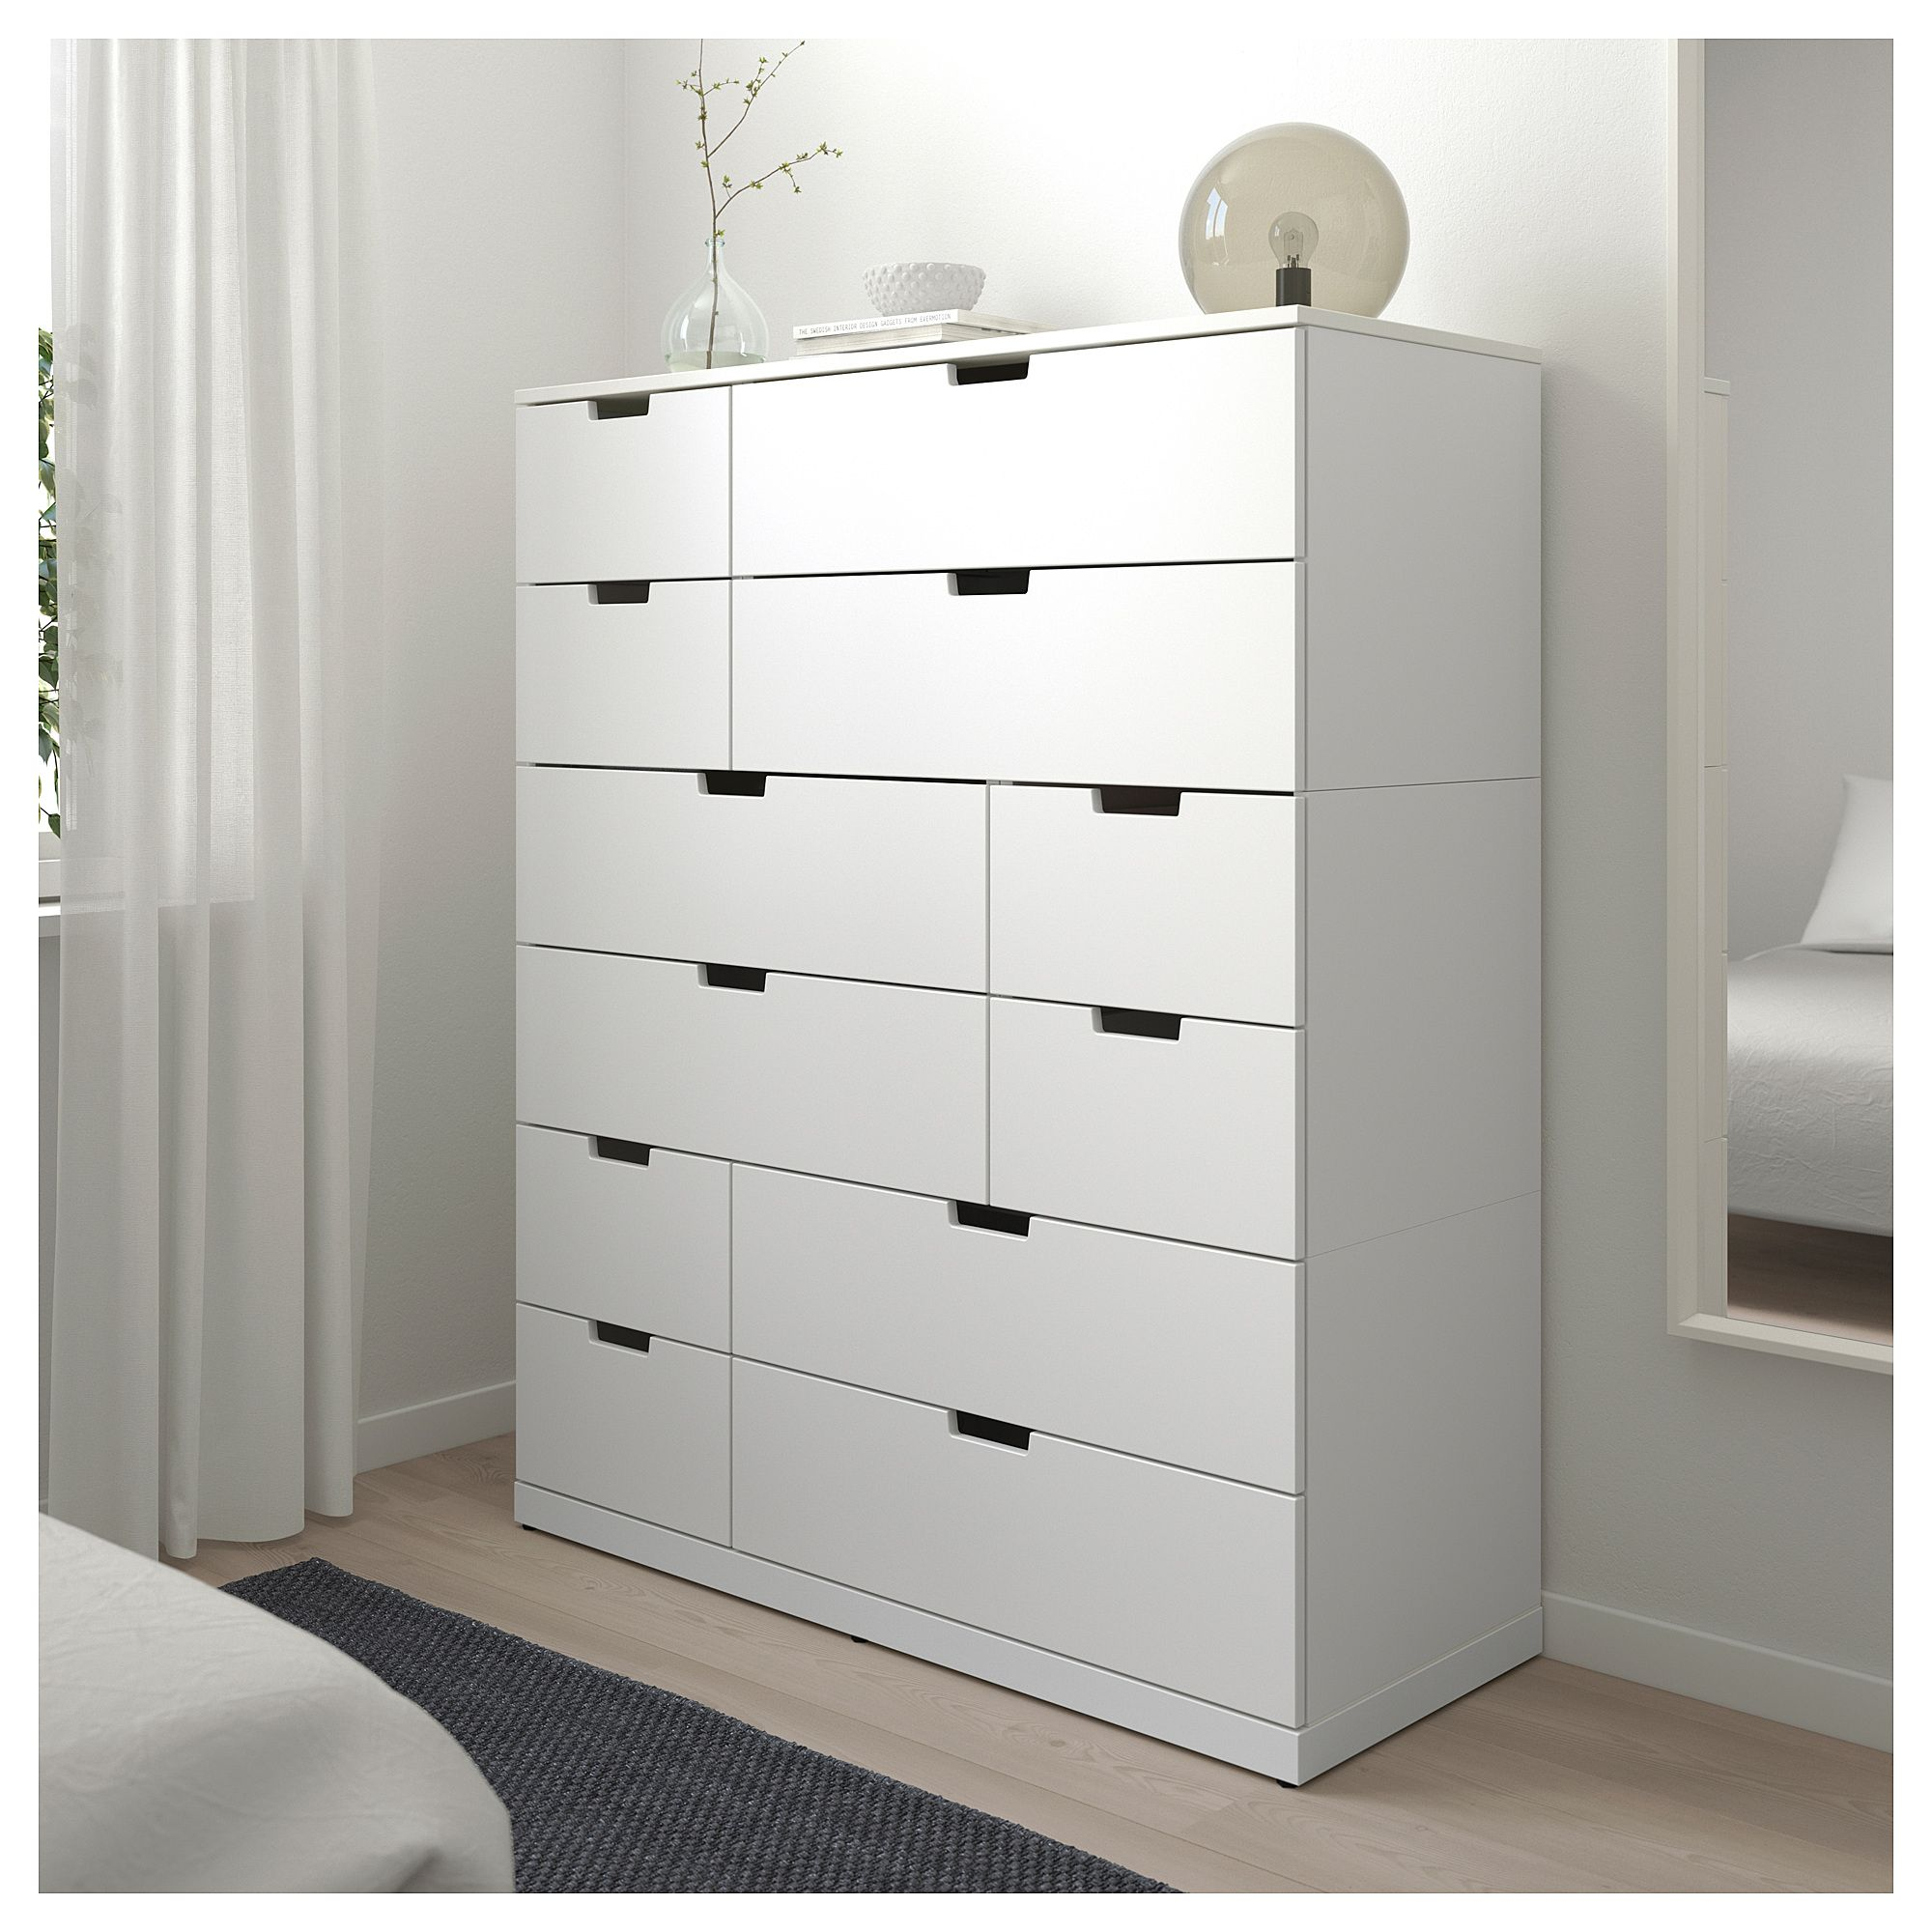 12 Drawer Chest Of Drawers Ikea Nordli 12 Drawer Chest White In 2019 Products Chest Of